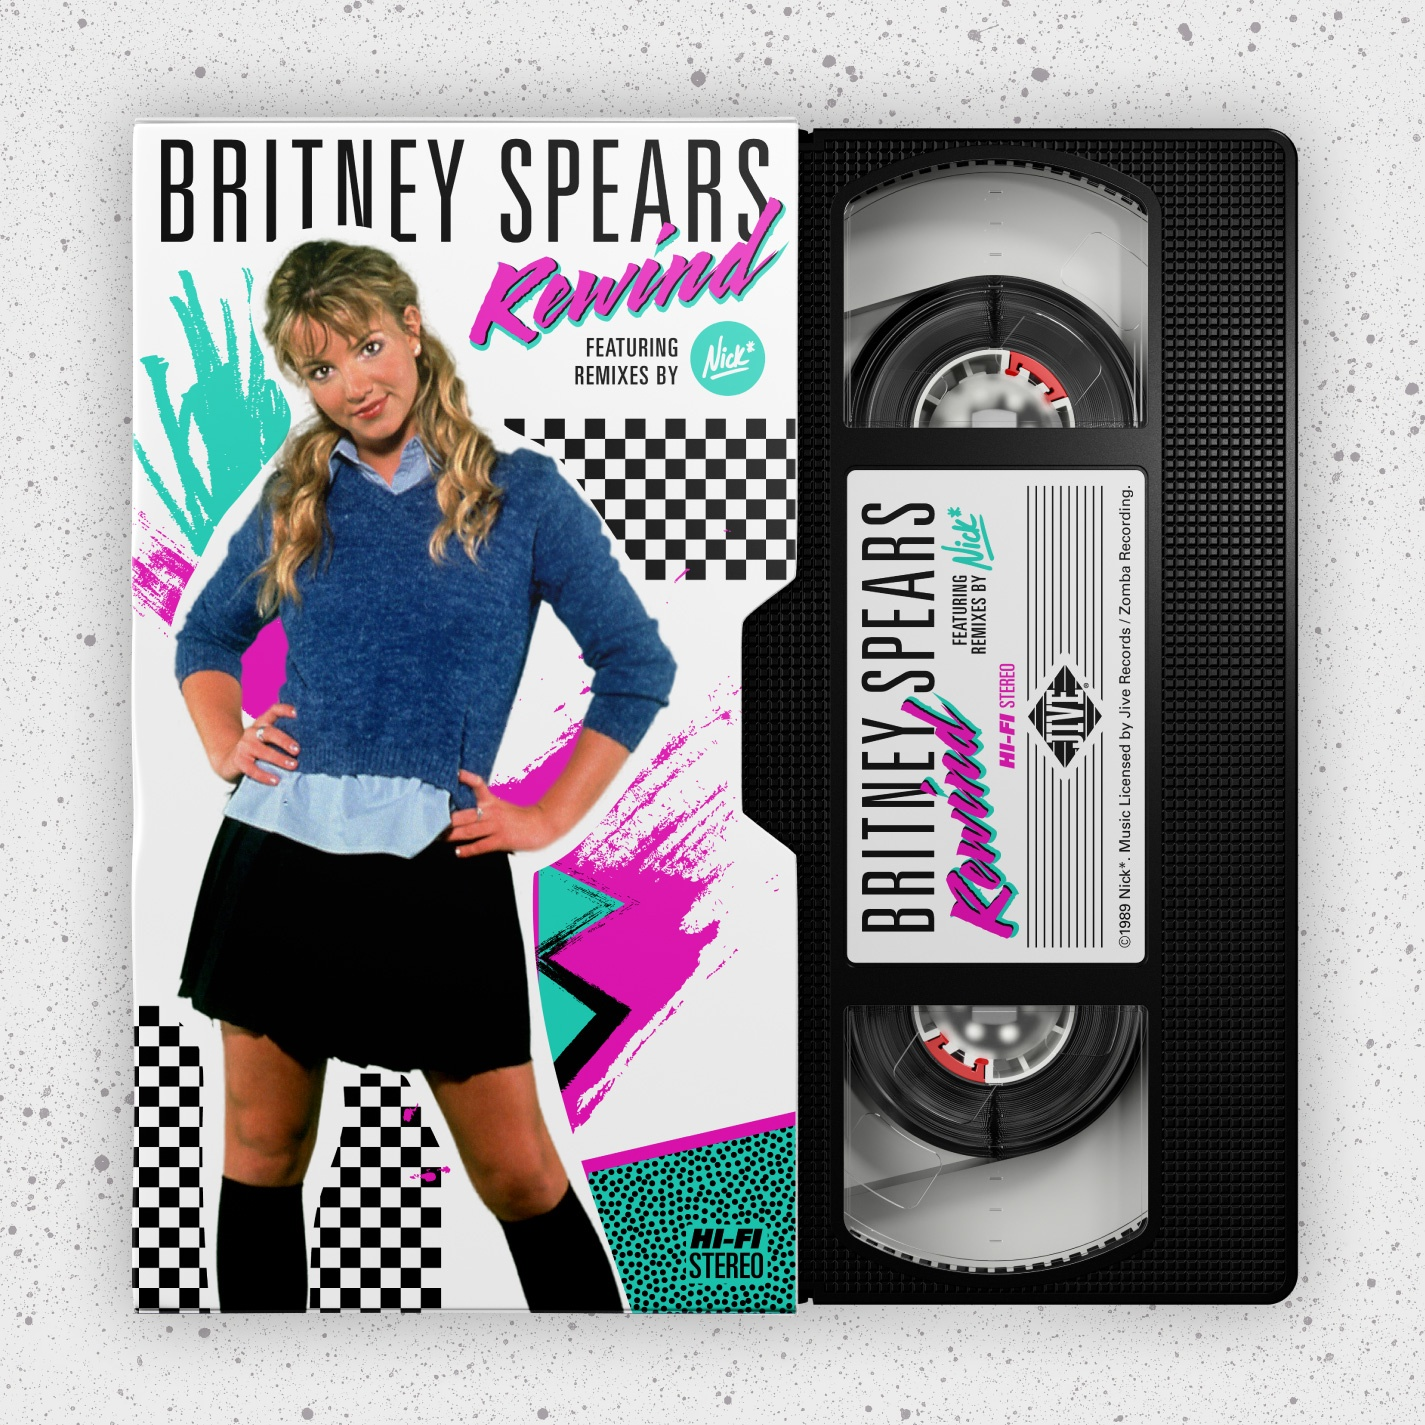 Britney Spears: Rewind – Full EP (80's Remixes)